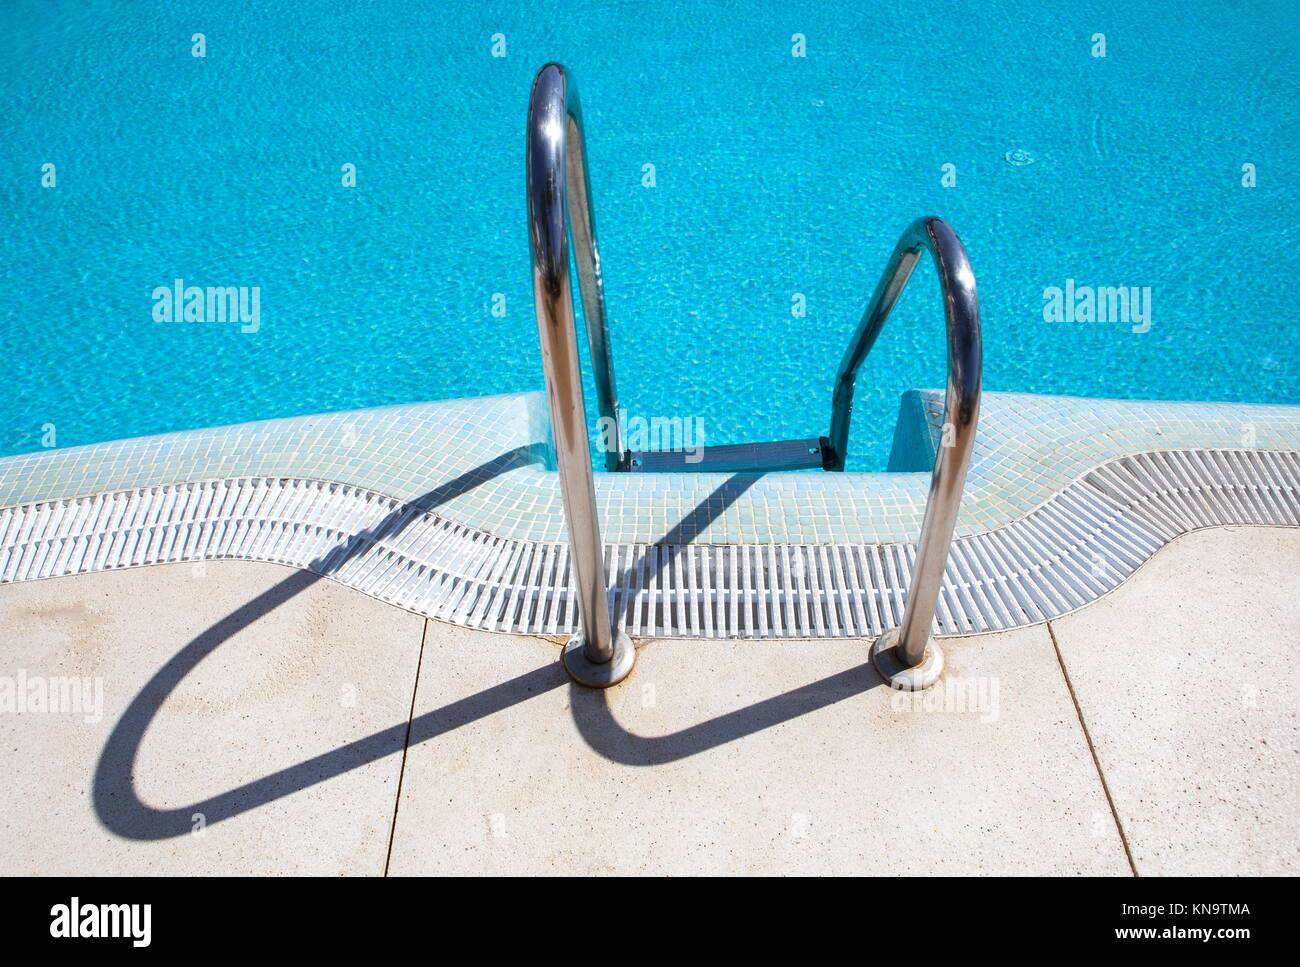 Pool ladder step of a swimming pool, Andalusia, Spain Stock ...